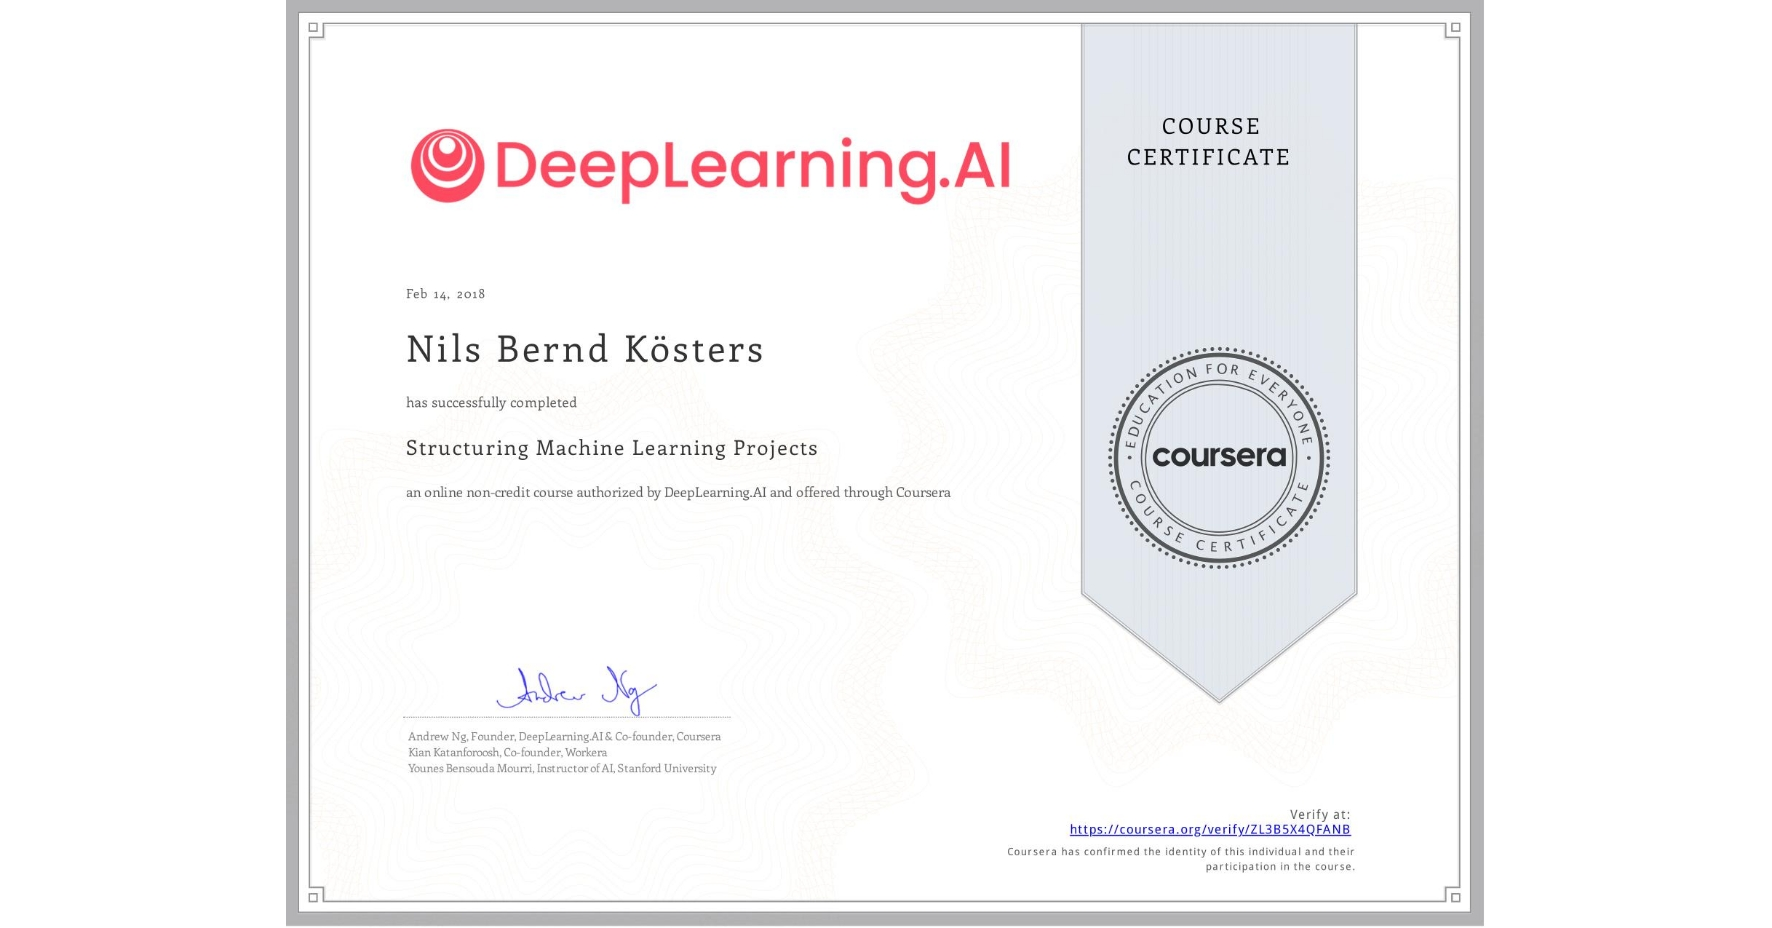 View certificate for Nils Bernd Kösters, Structuring Machine Learning Projects, an online non-credit course authorized by DeepLearning.AI and offered through Coursera